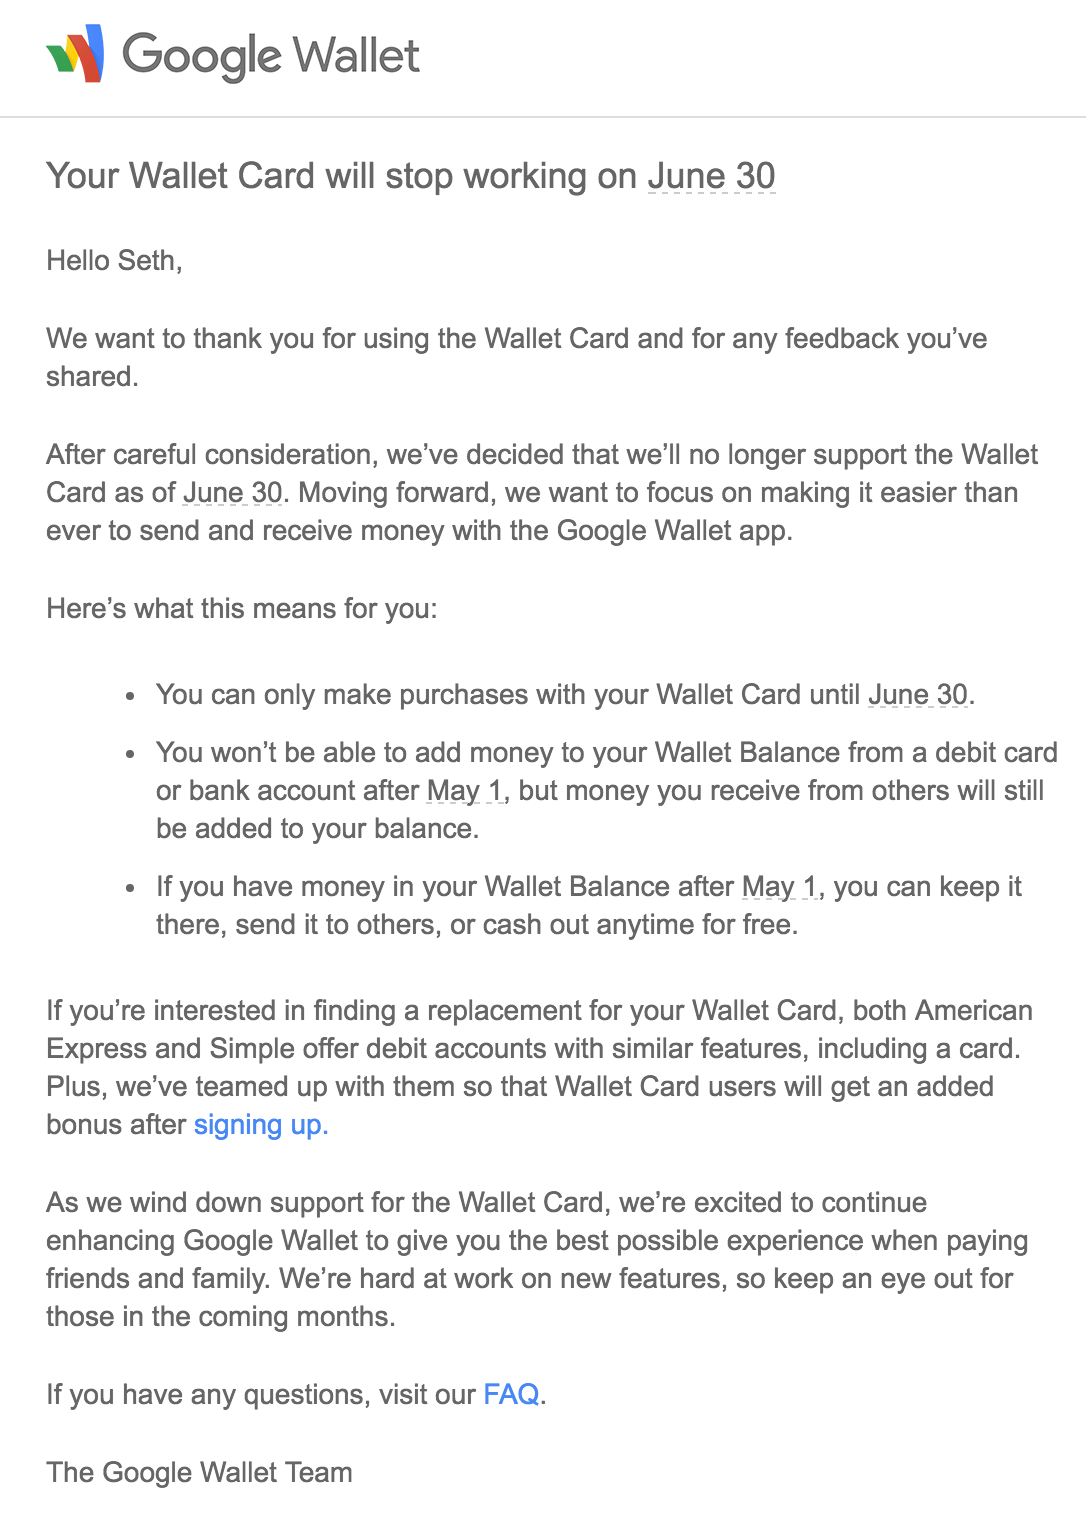 App teardown suggests that the Google Wallet card is going